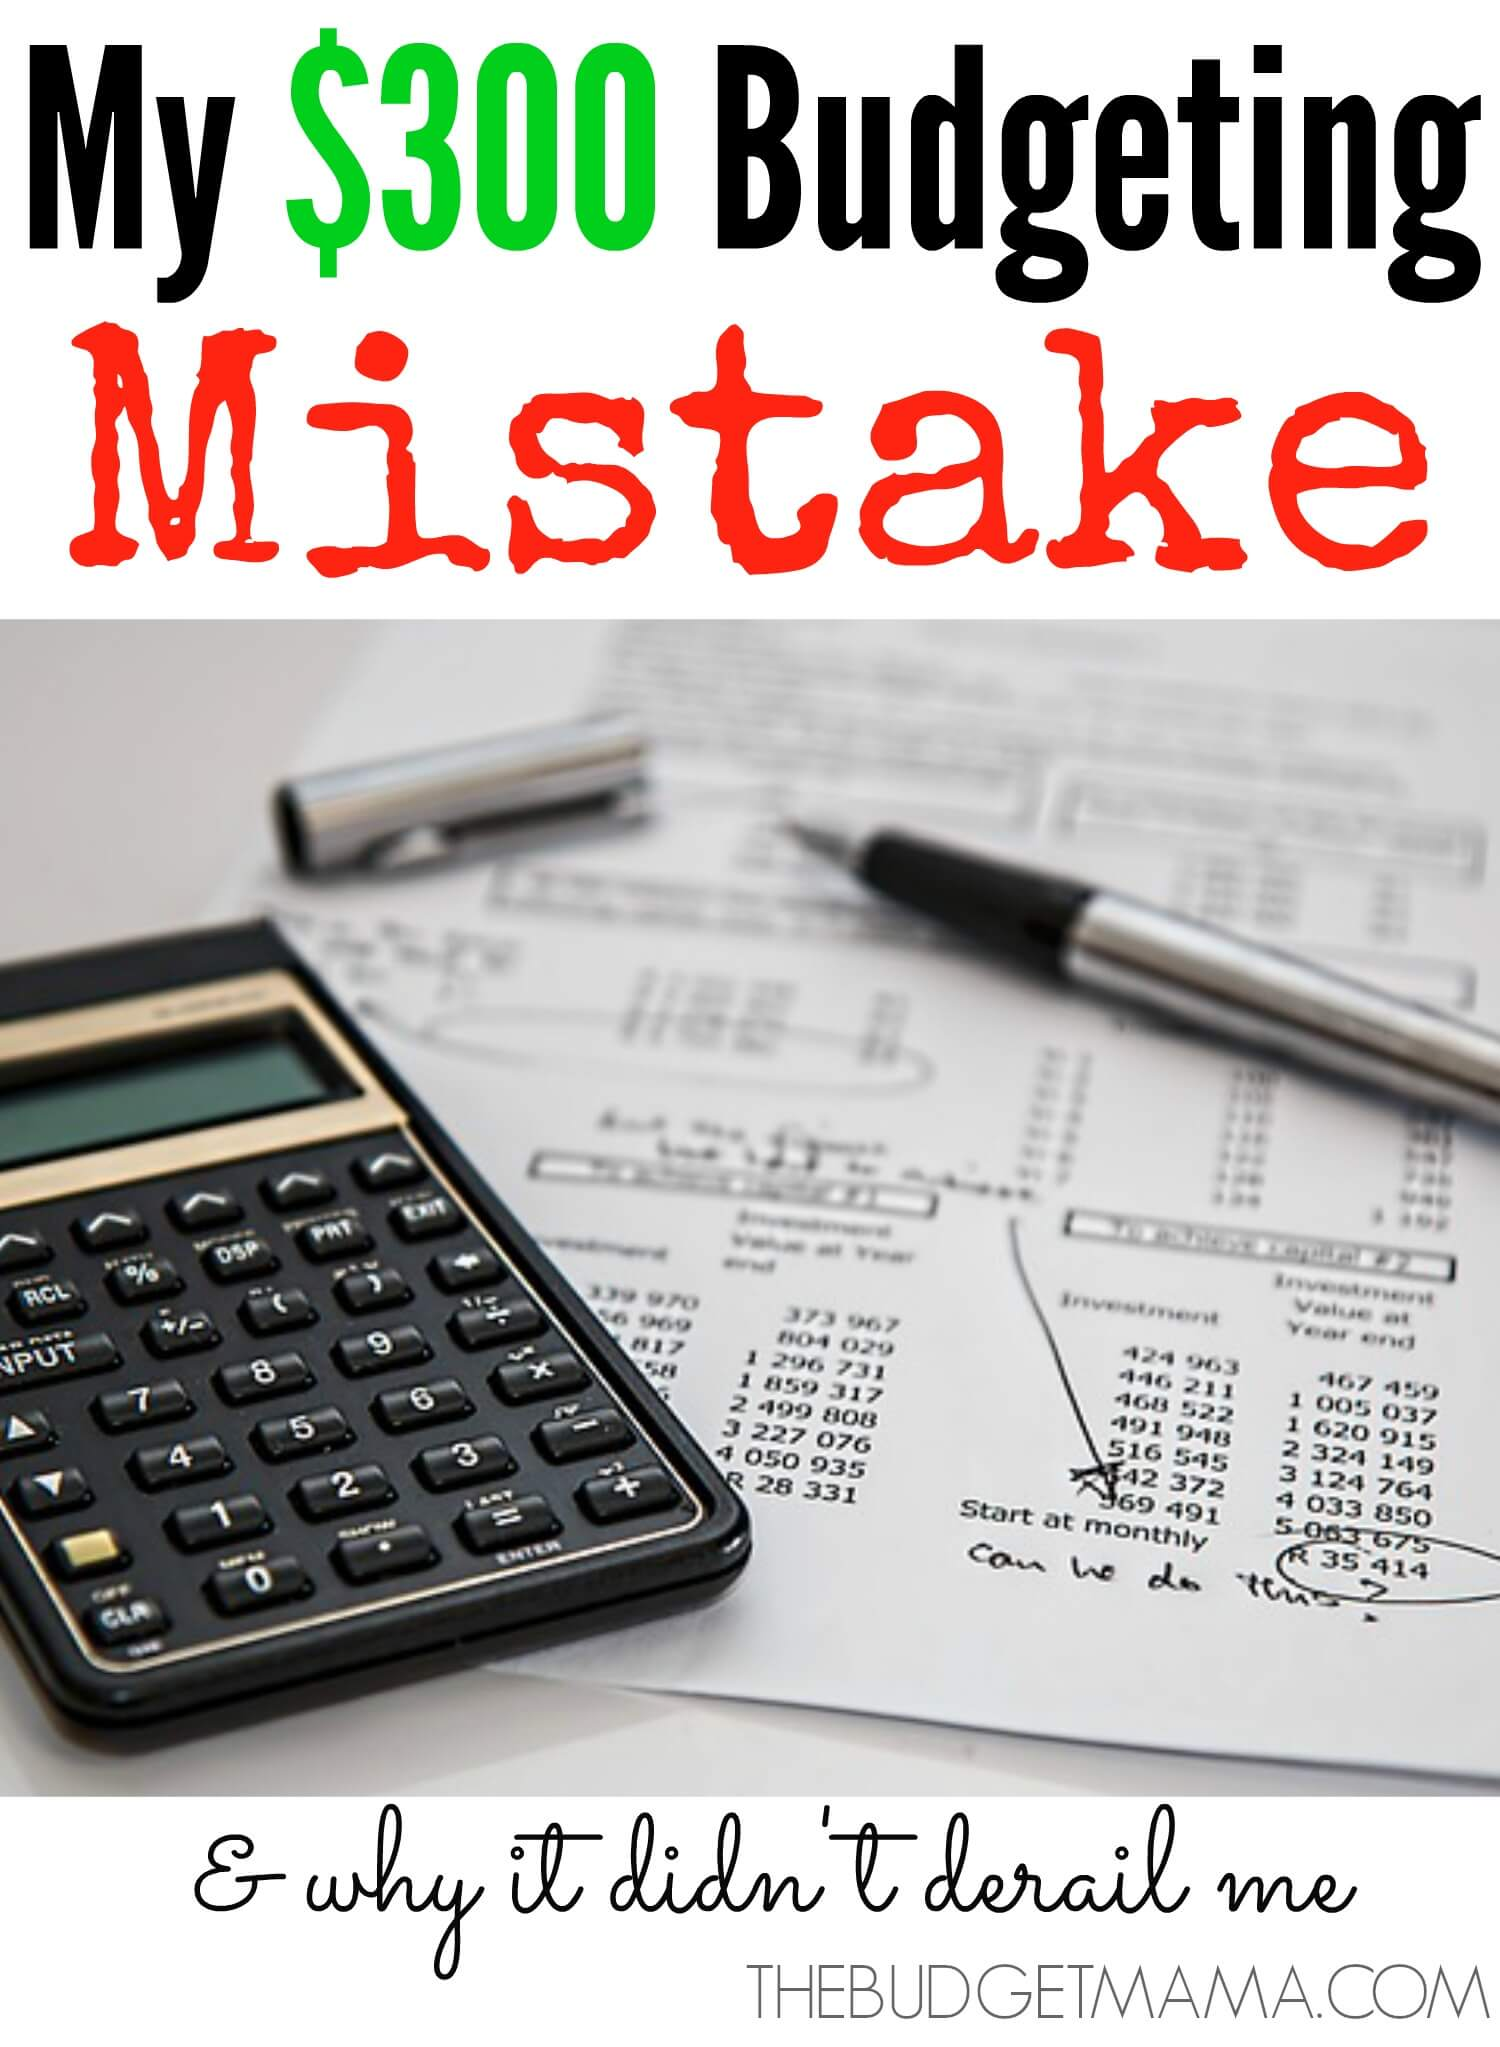 My $300 Budgeting Mistake